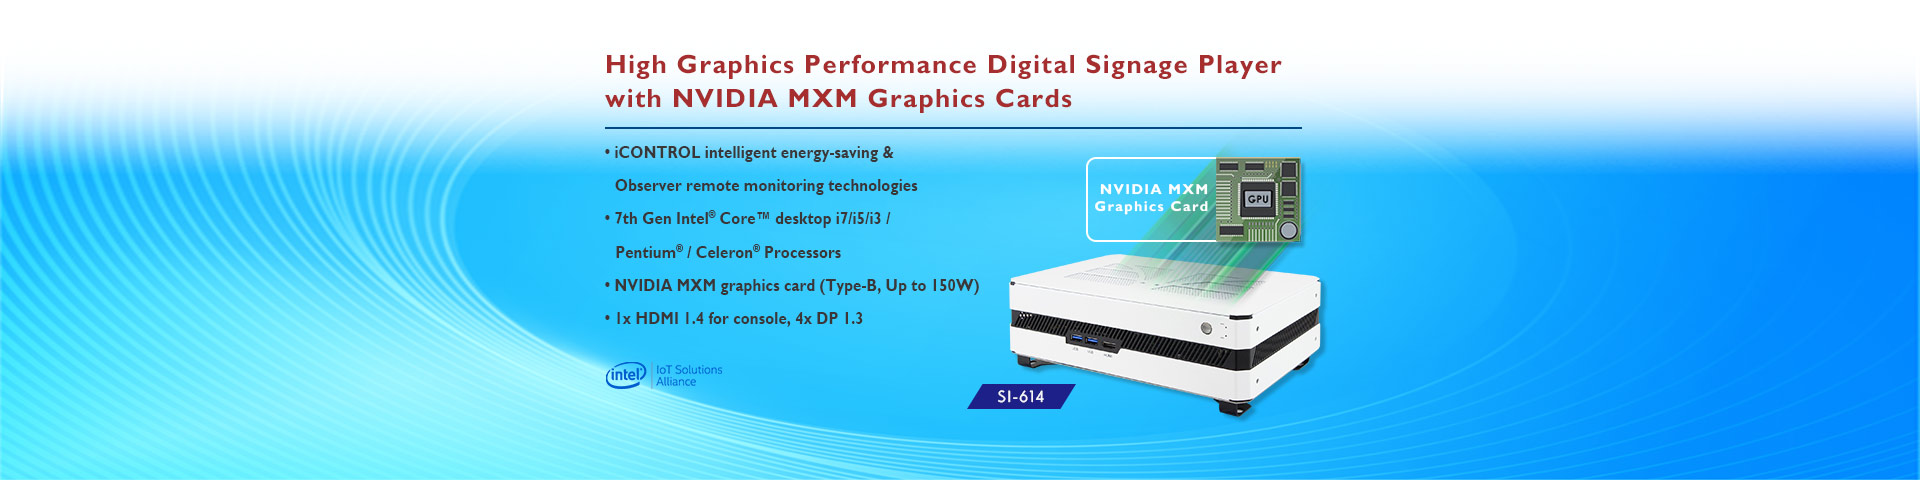 IBASE Reveals High Graphics Performance Digital Signage Player with NVIDIA MXM Graphics Cards